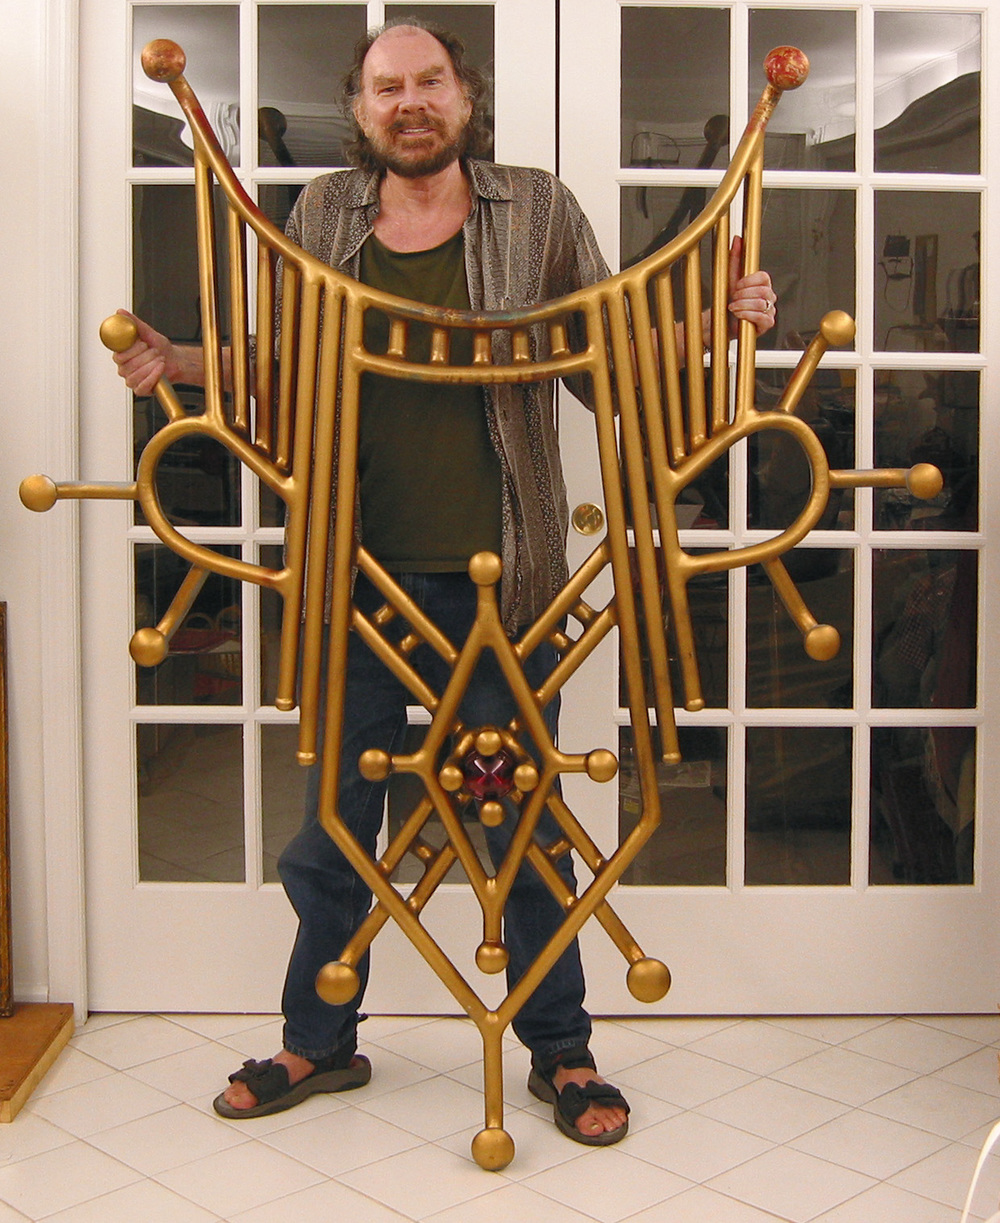 The artist with a full scale welded sculpture